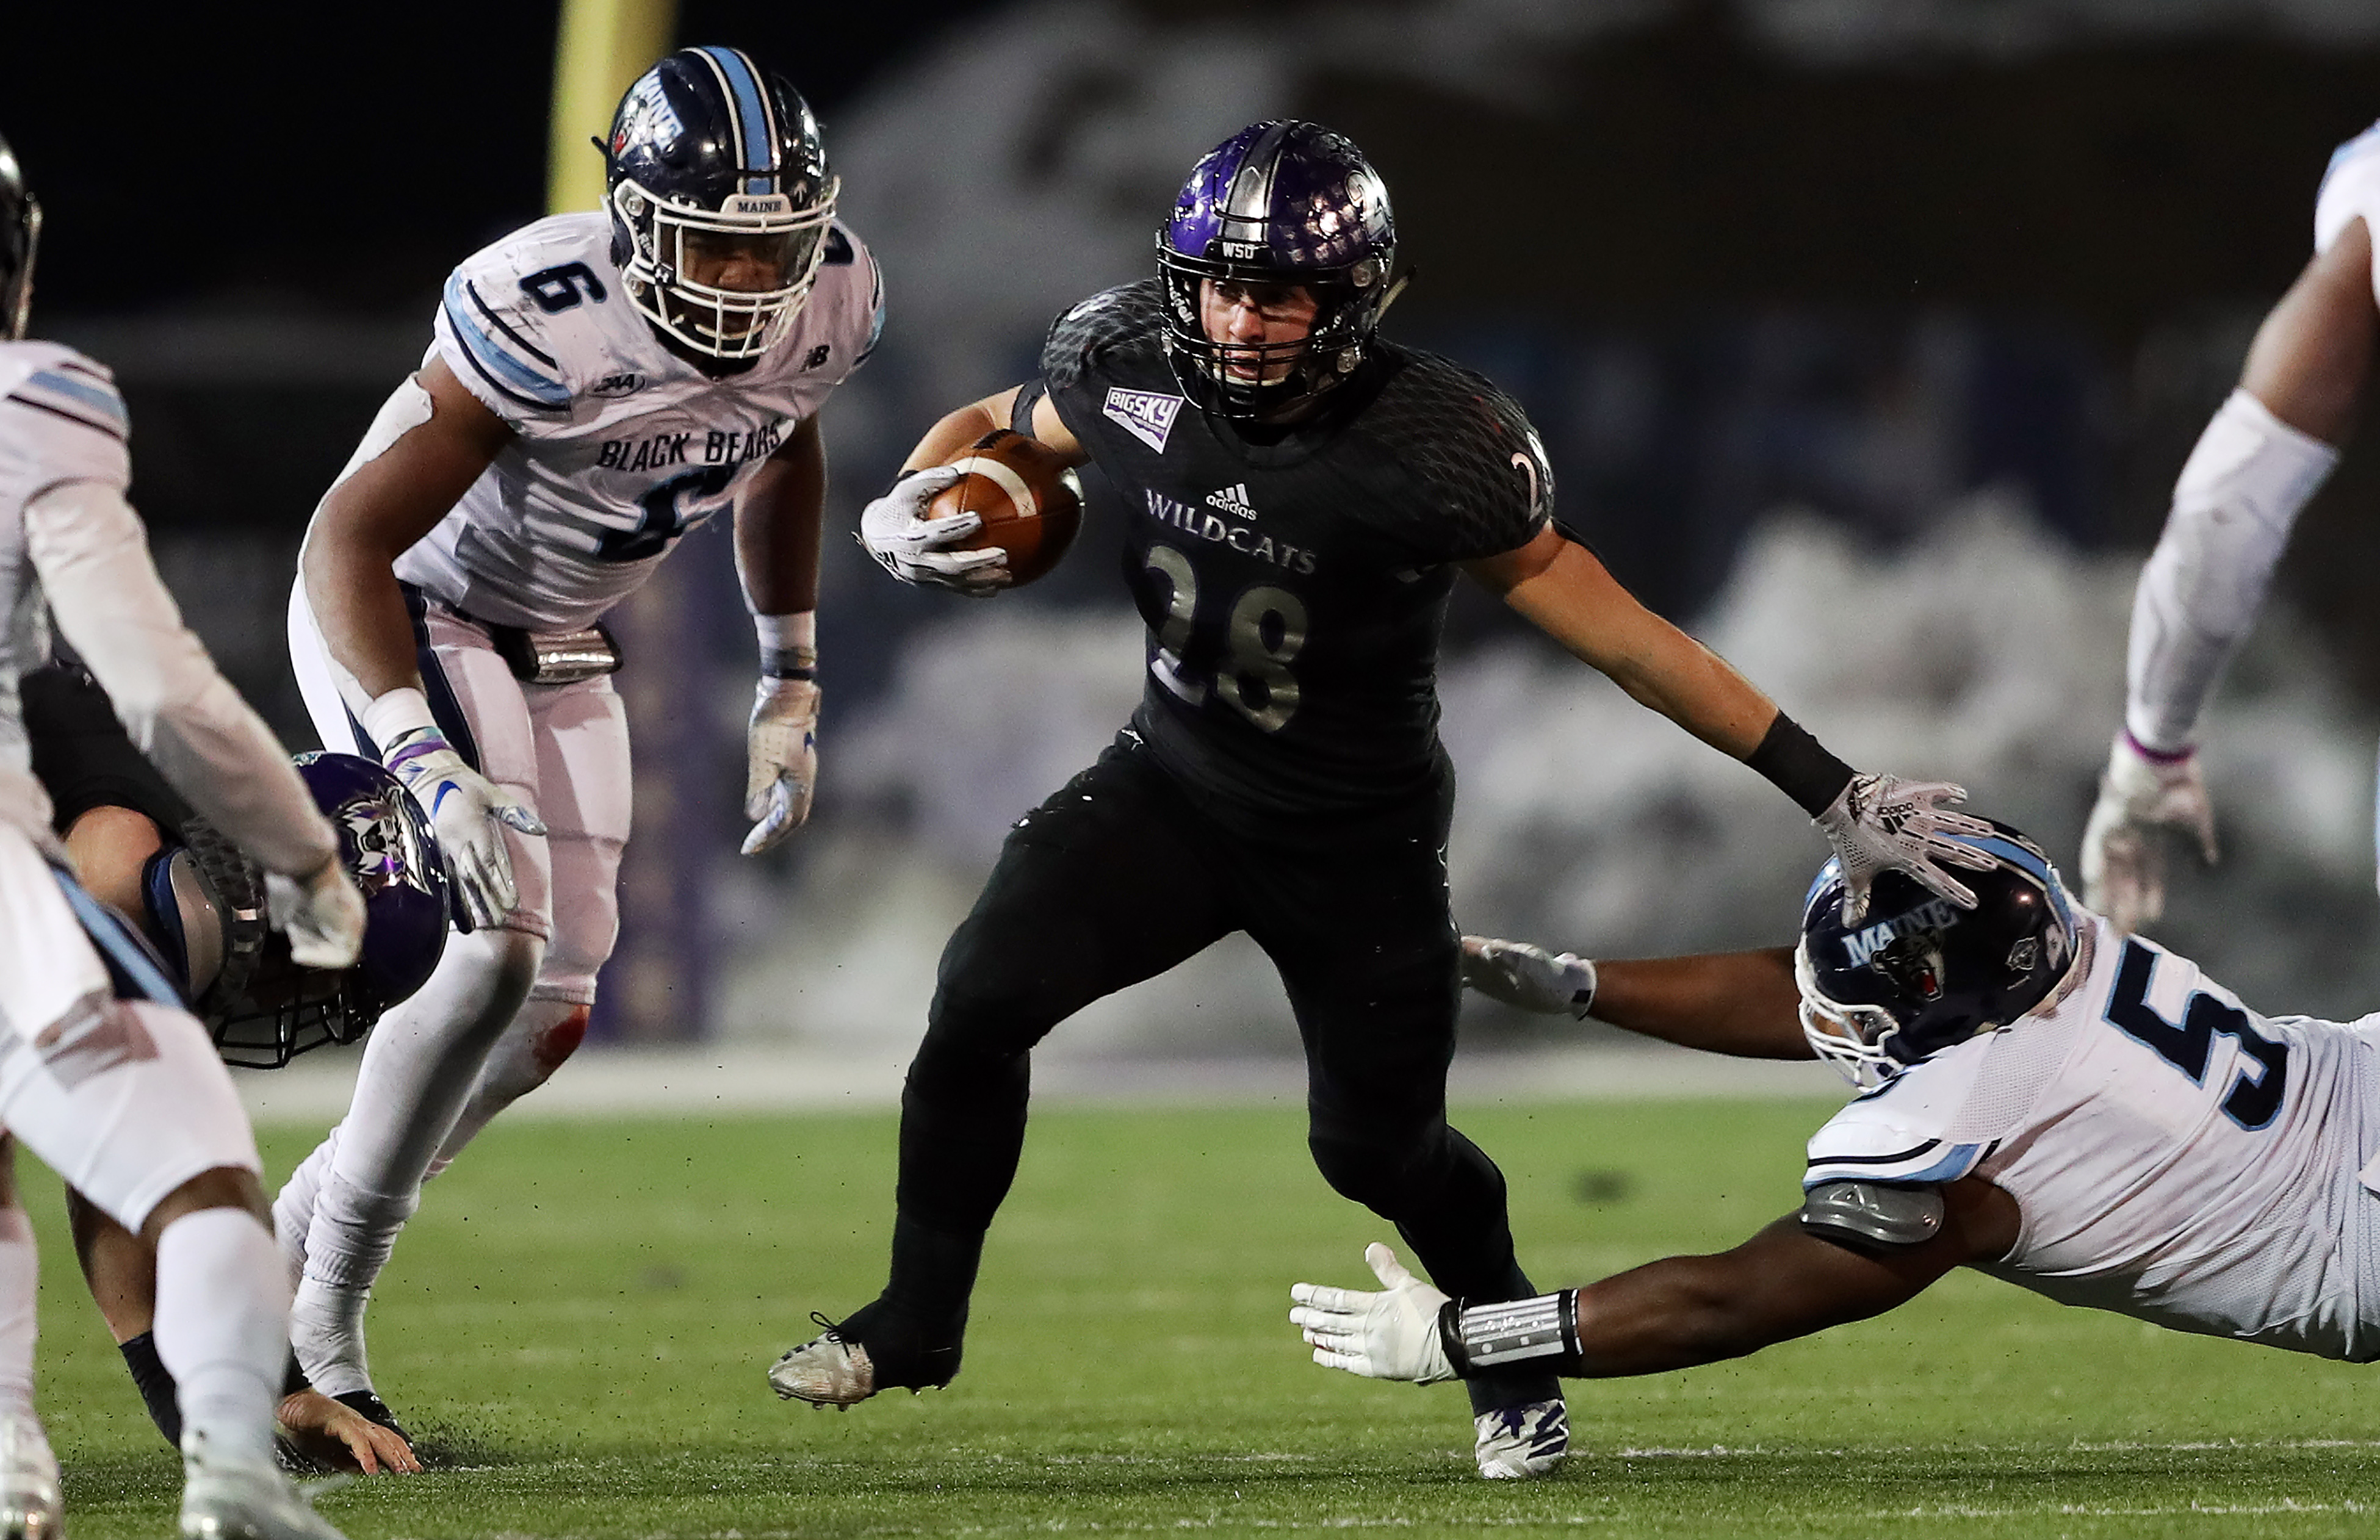 Weber State Wildcats running back Josh Davis (28) looks for running room as Weber State and Maine play in FCS quarterfinal football action in Ogden on Friday, Dec. 7, 2018. Maine won 23-18.